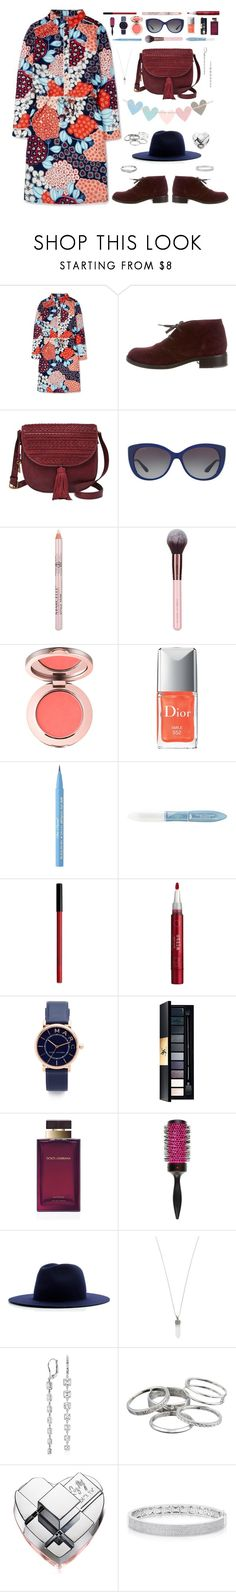 """""""Shirtdress"""" by cocochaneljr ❤ liked on Polyvore featuring Boden, Bottega Veneta, FOSSIL, Bulgari, Luxie, Too Faced Cosmetics, L'Oréal Paris, NYX, Stila and Marc Jacobs"""